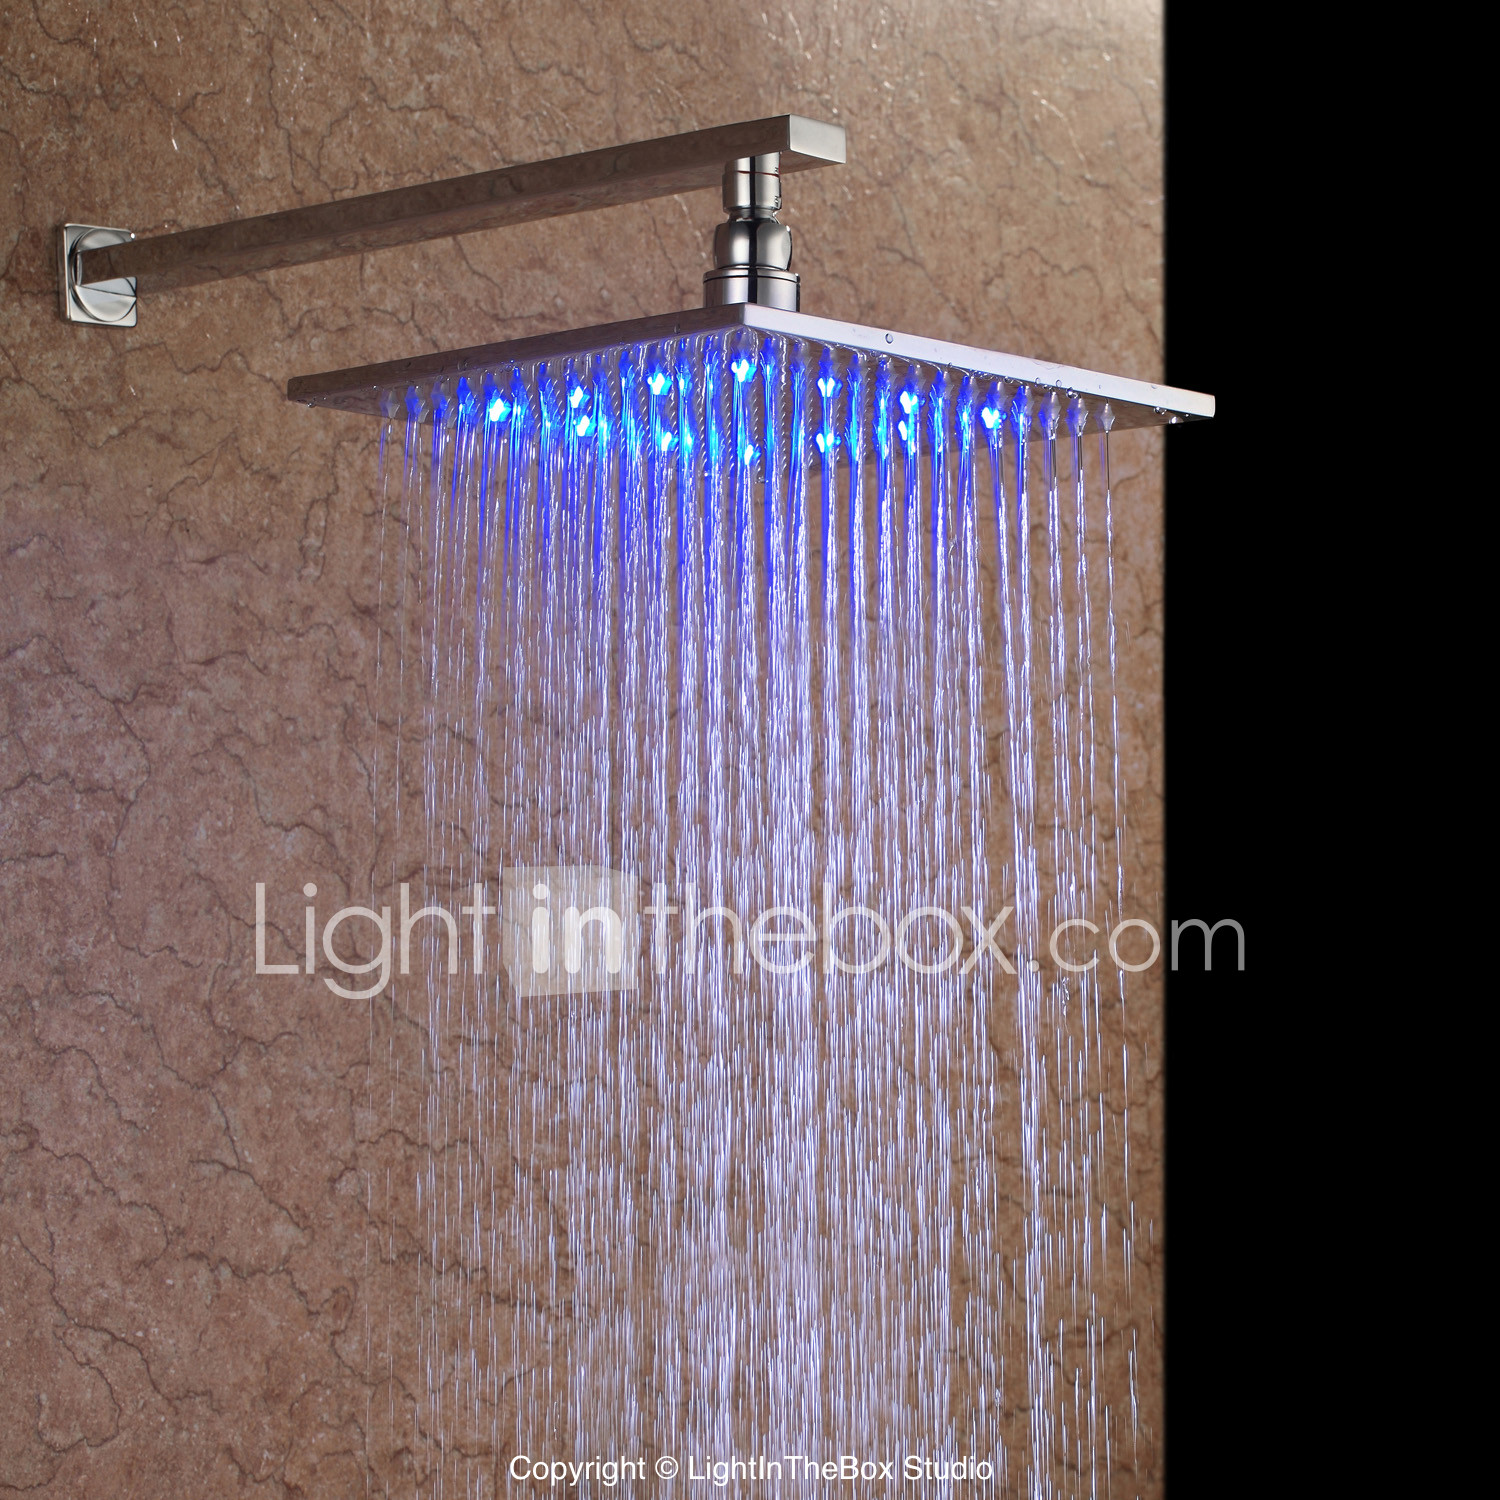 Contemporary Rain Shower Nickel Brushed Feature Rainfall